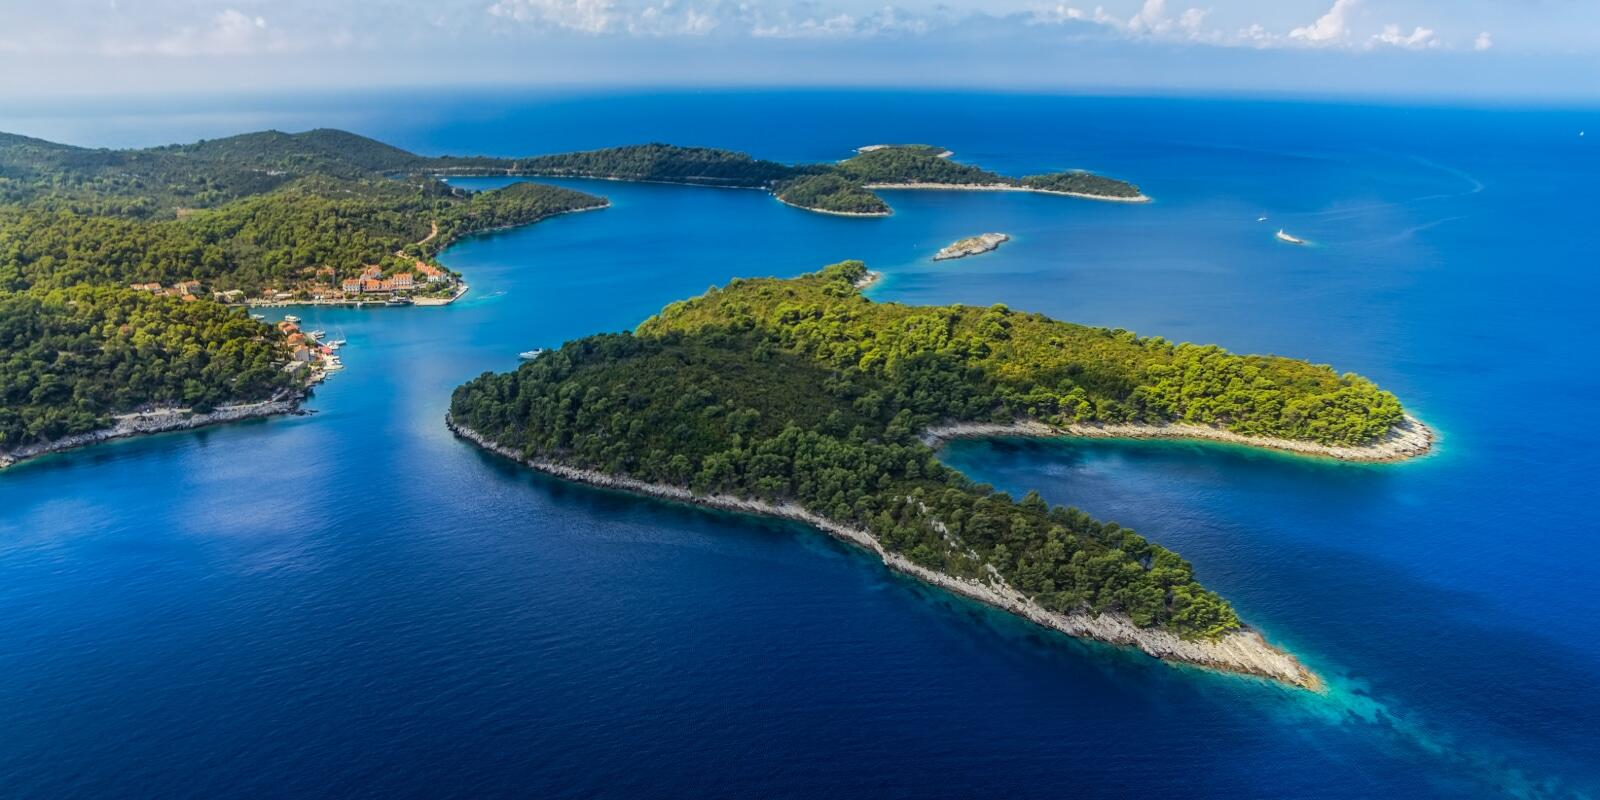 August has arrived! Get on board to discover the wonders of Croatia!